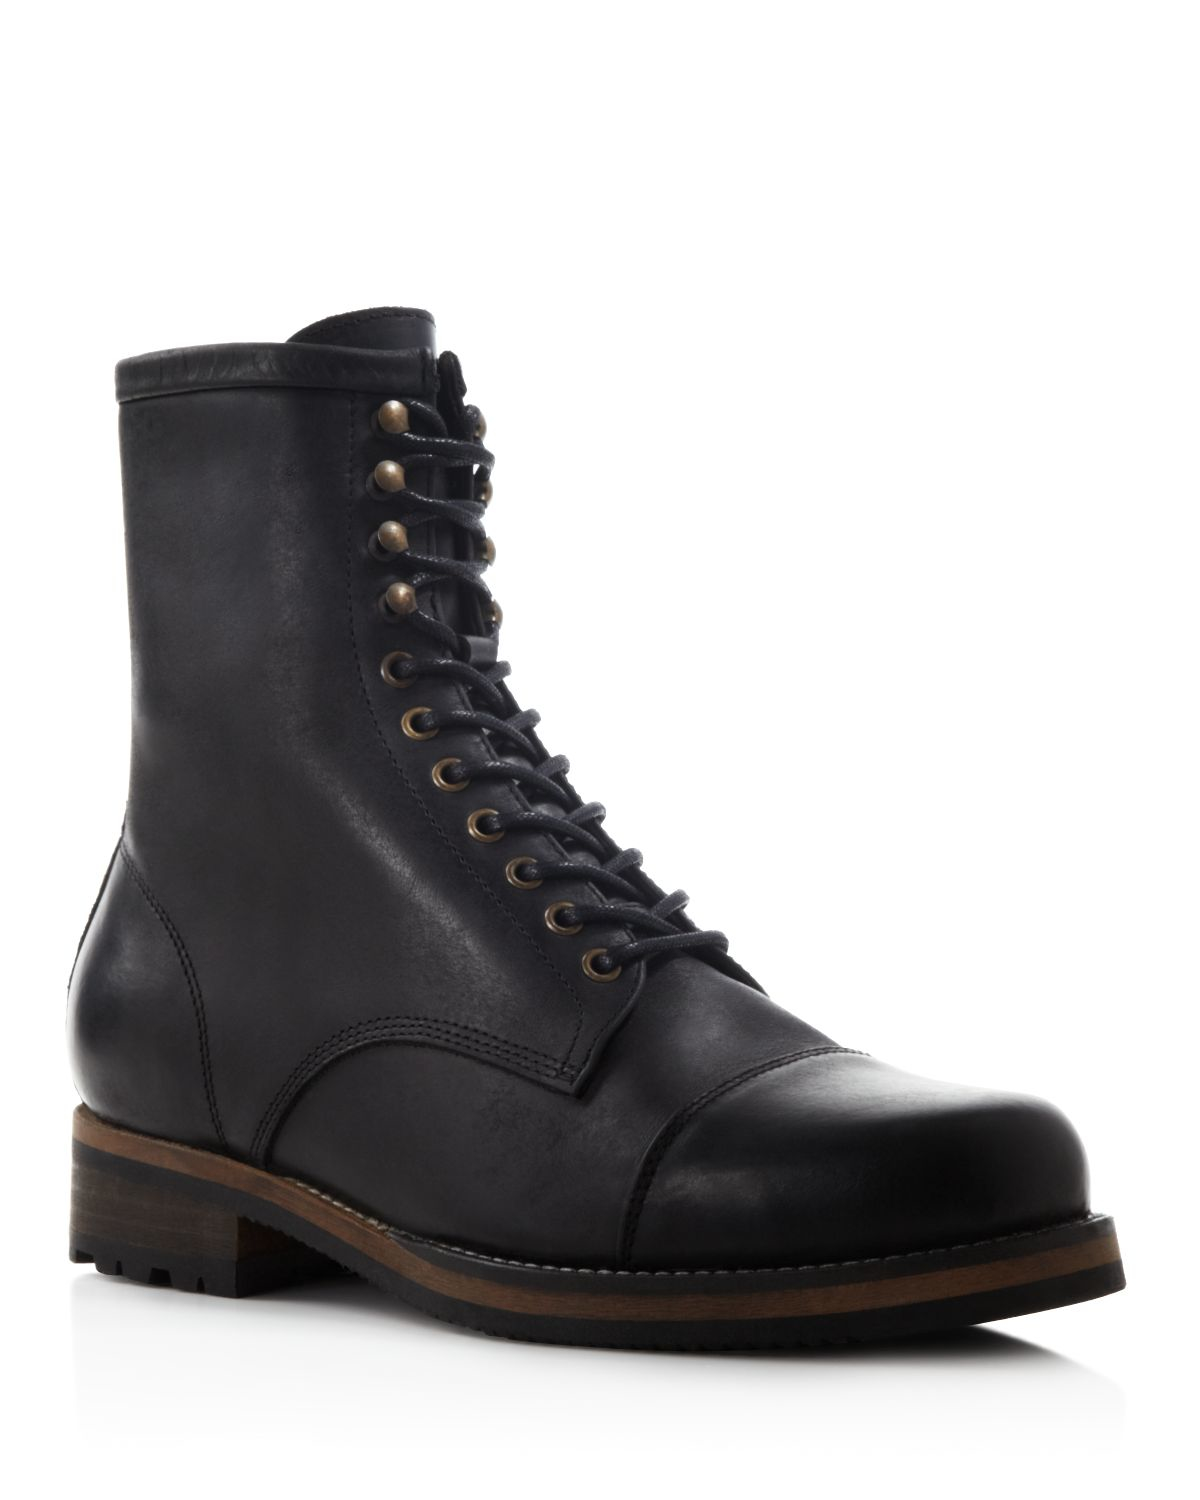 h by hudson thruxton high boots in black for lyst